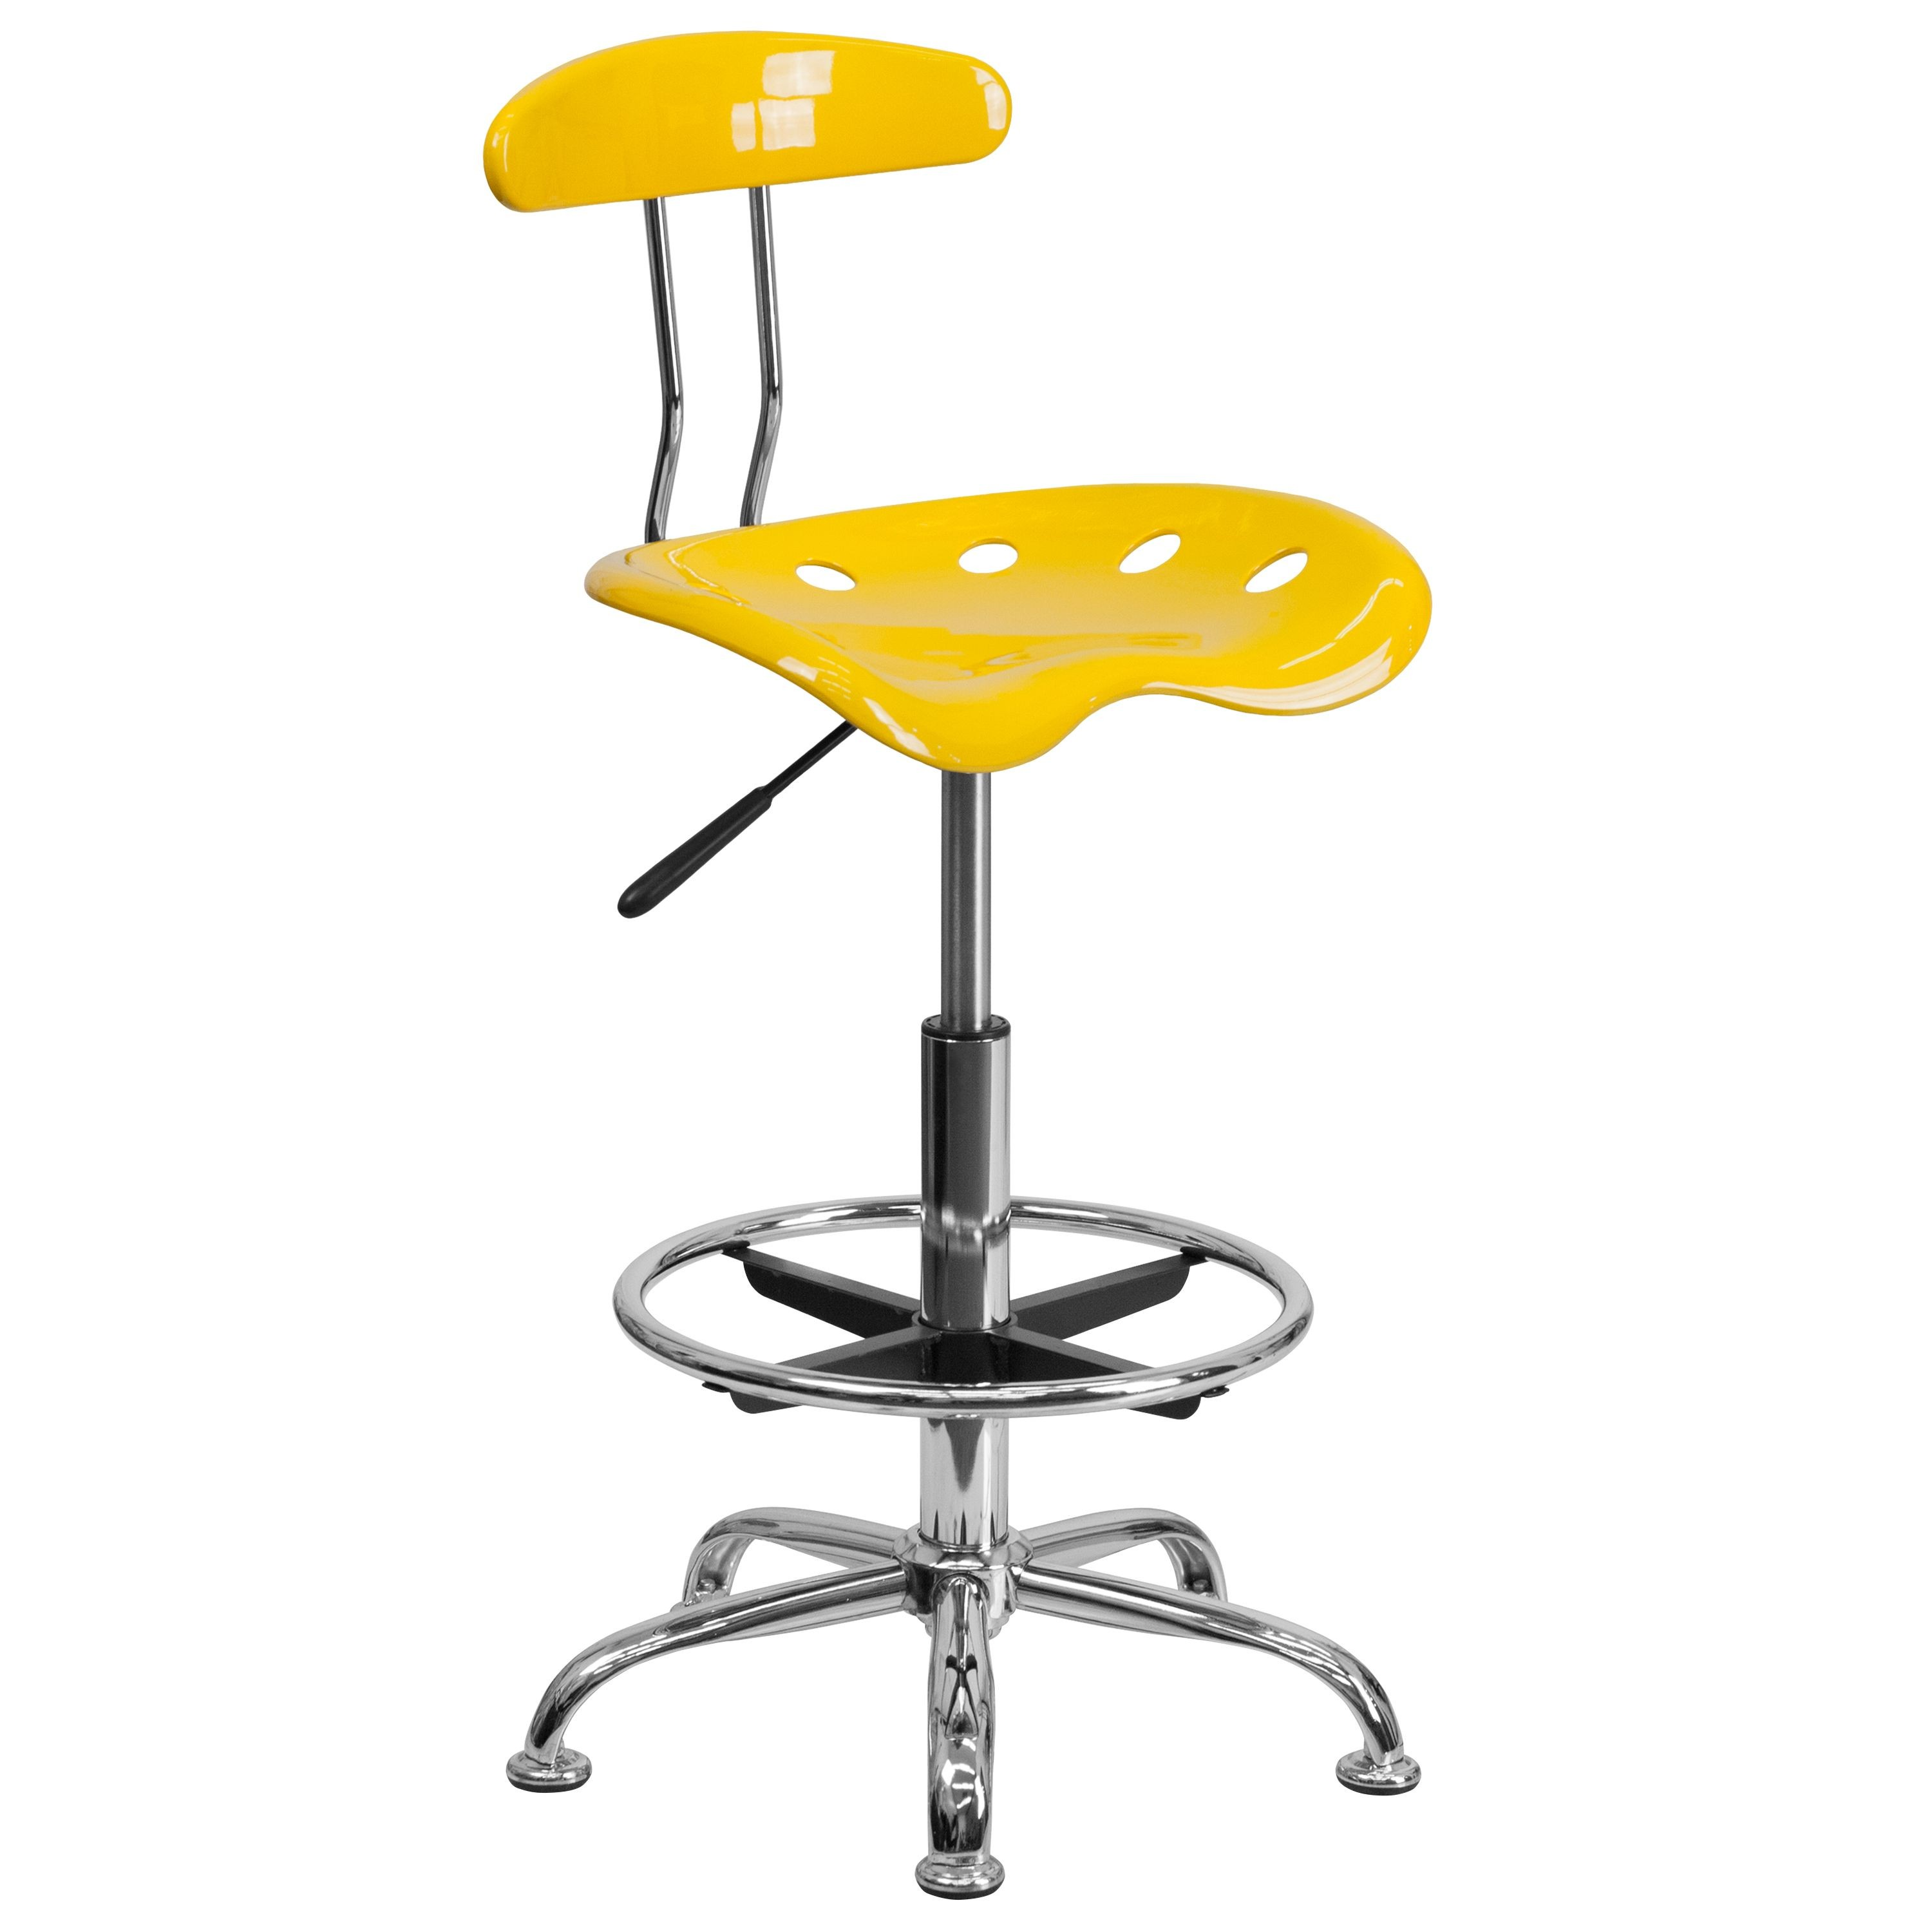 Vibrant Orange-Yellow and Chrome Drafting Stool-Bar Stool with Tractor Seat